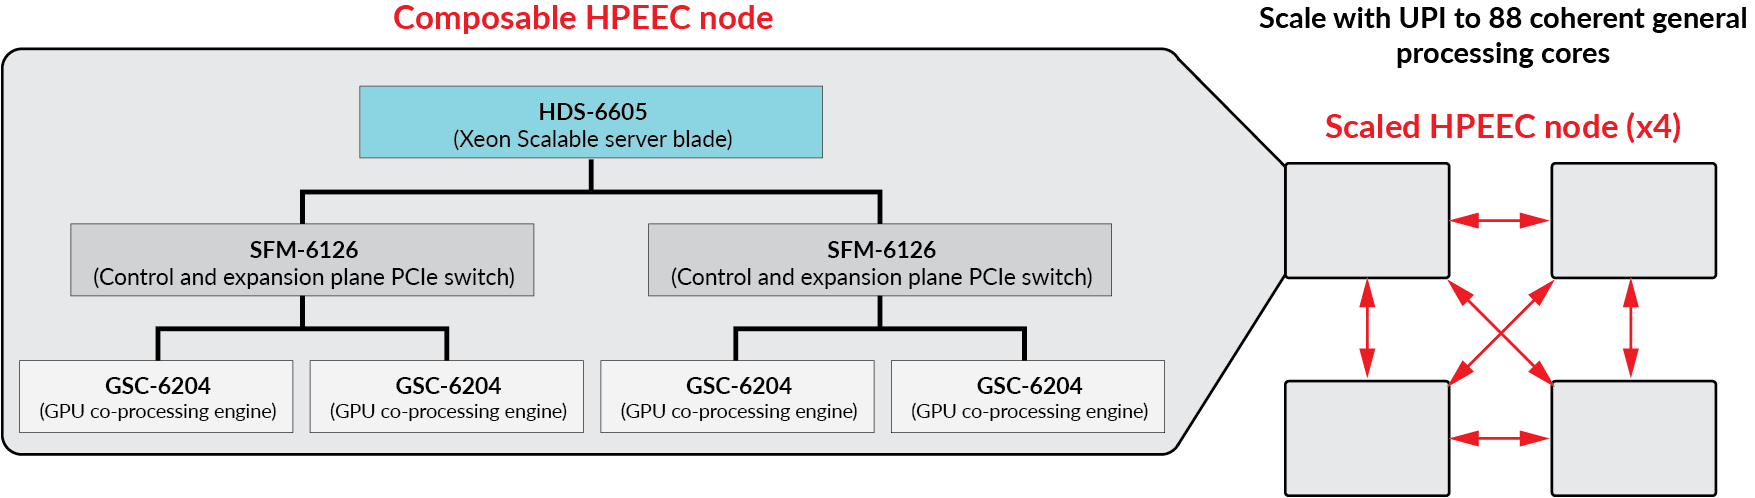 scaled-hpeec-node-x-4.png